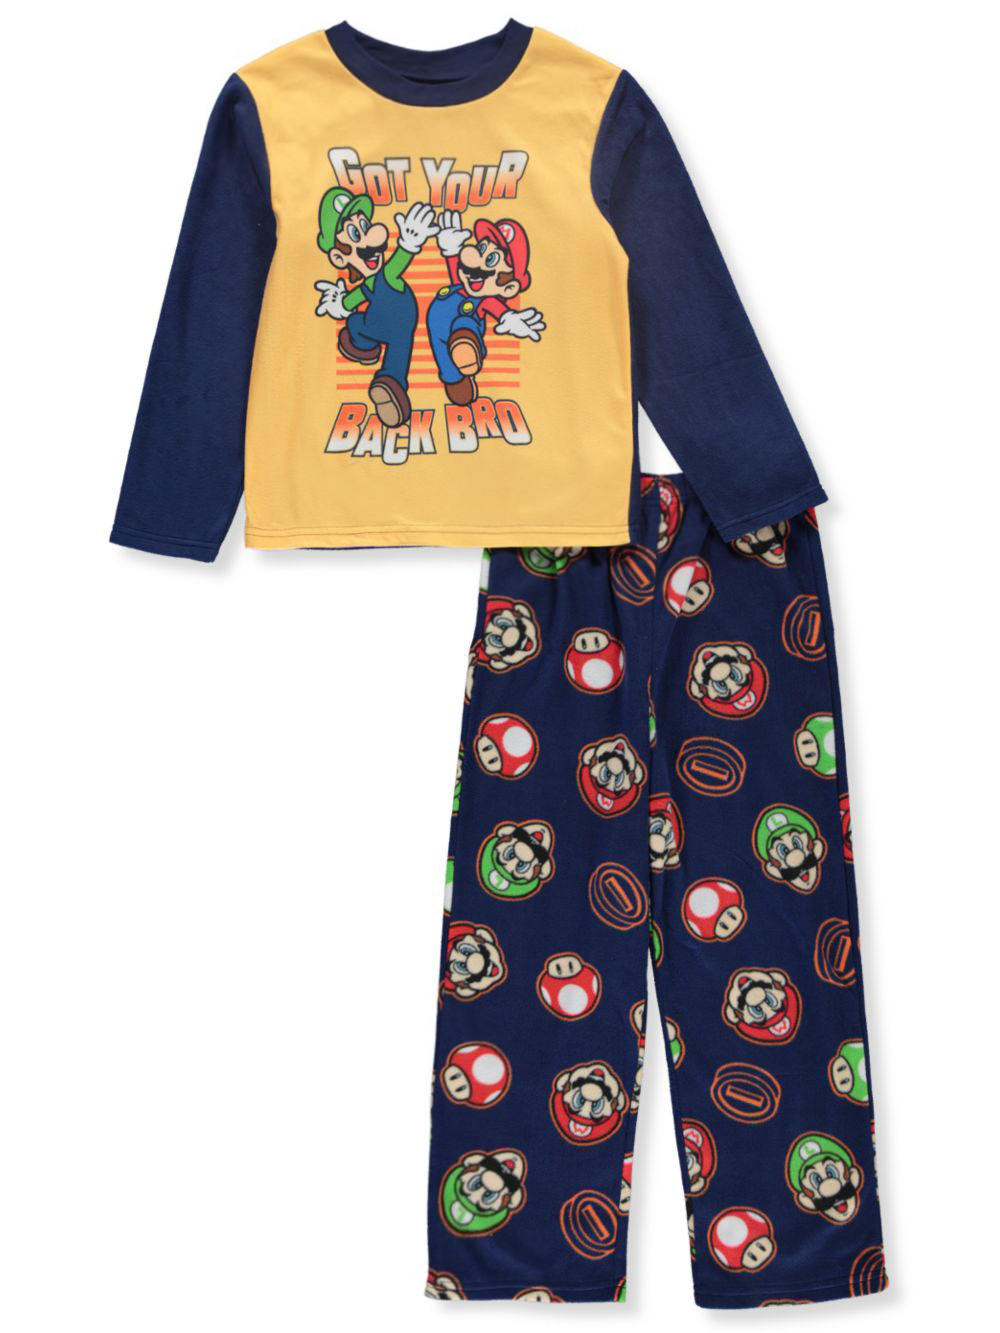 Super Mario Sleepwear